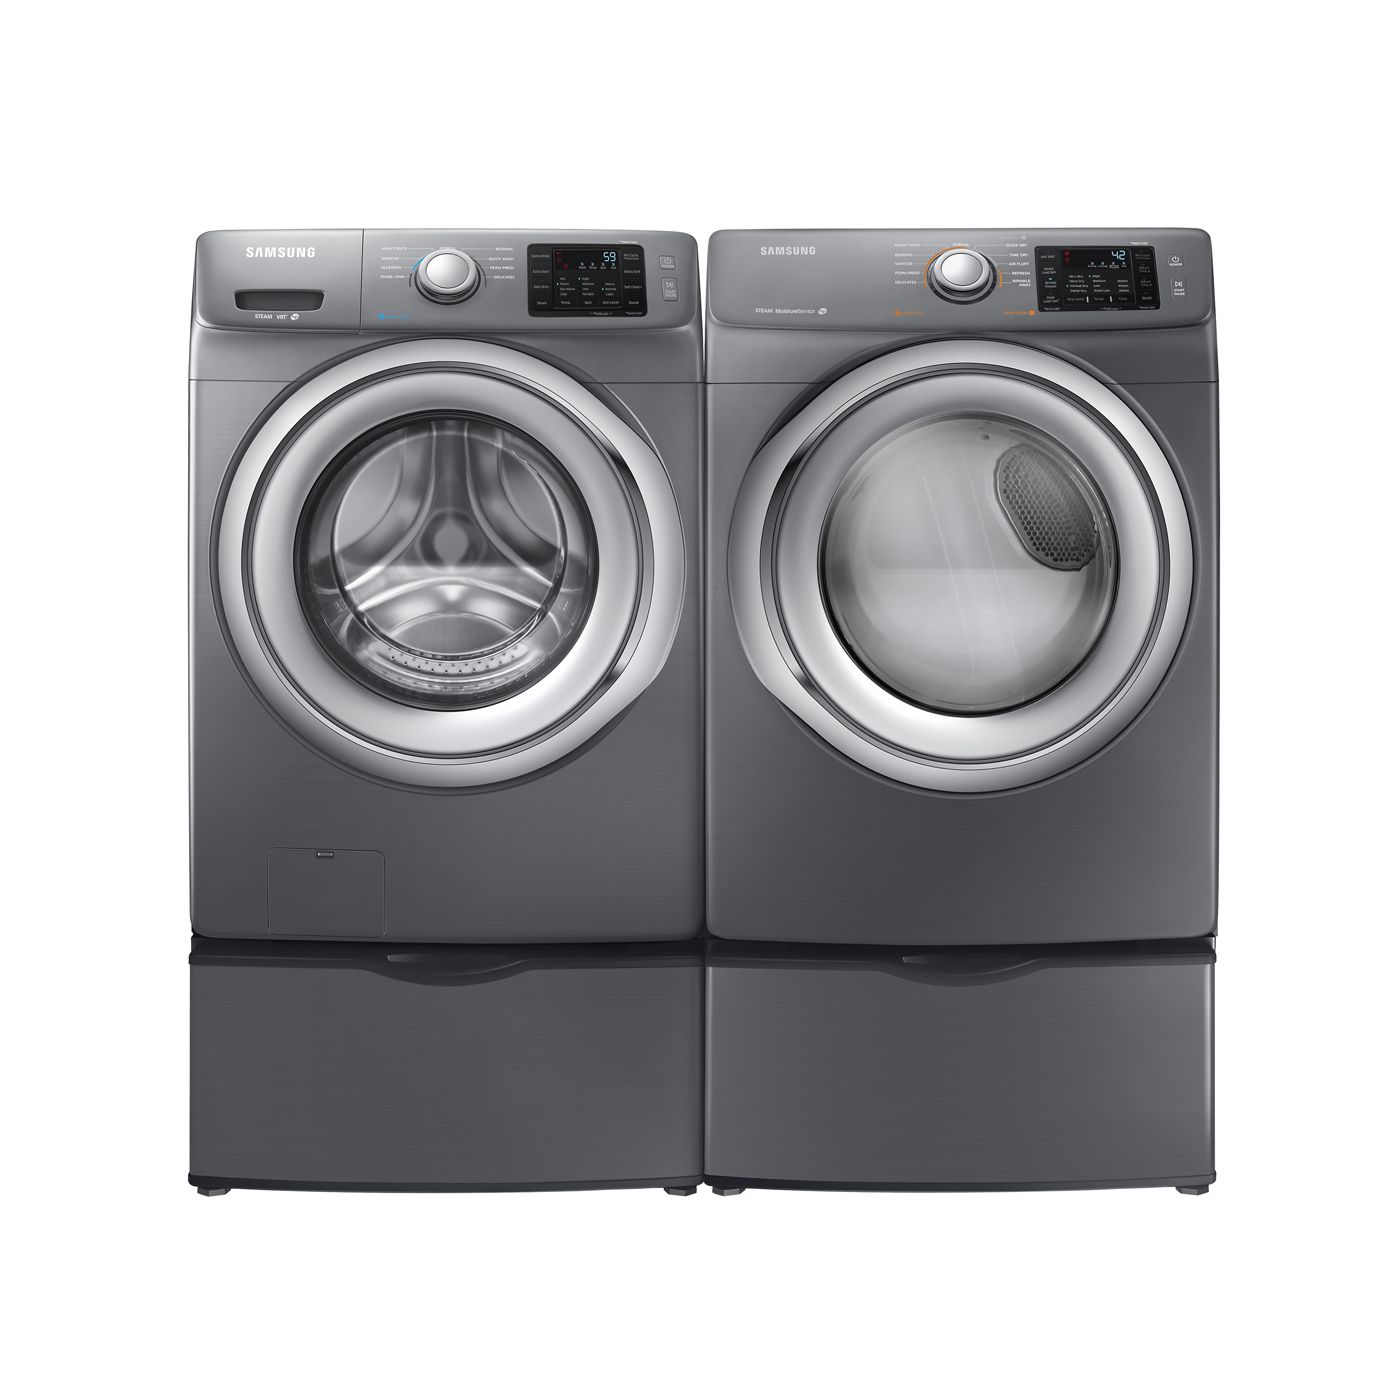 Best Price On Front Load Washer And Dryer Samsung Dv42h5200ep Ac Wf42h5200ap A2 High Efficiency Front Load